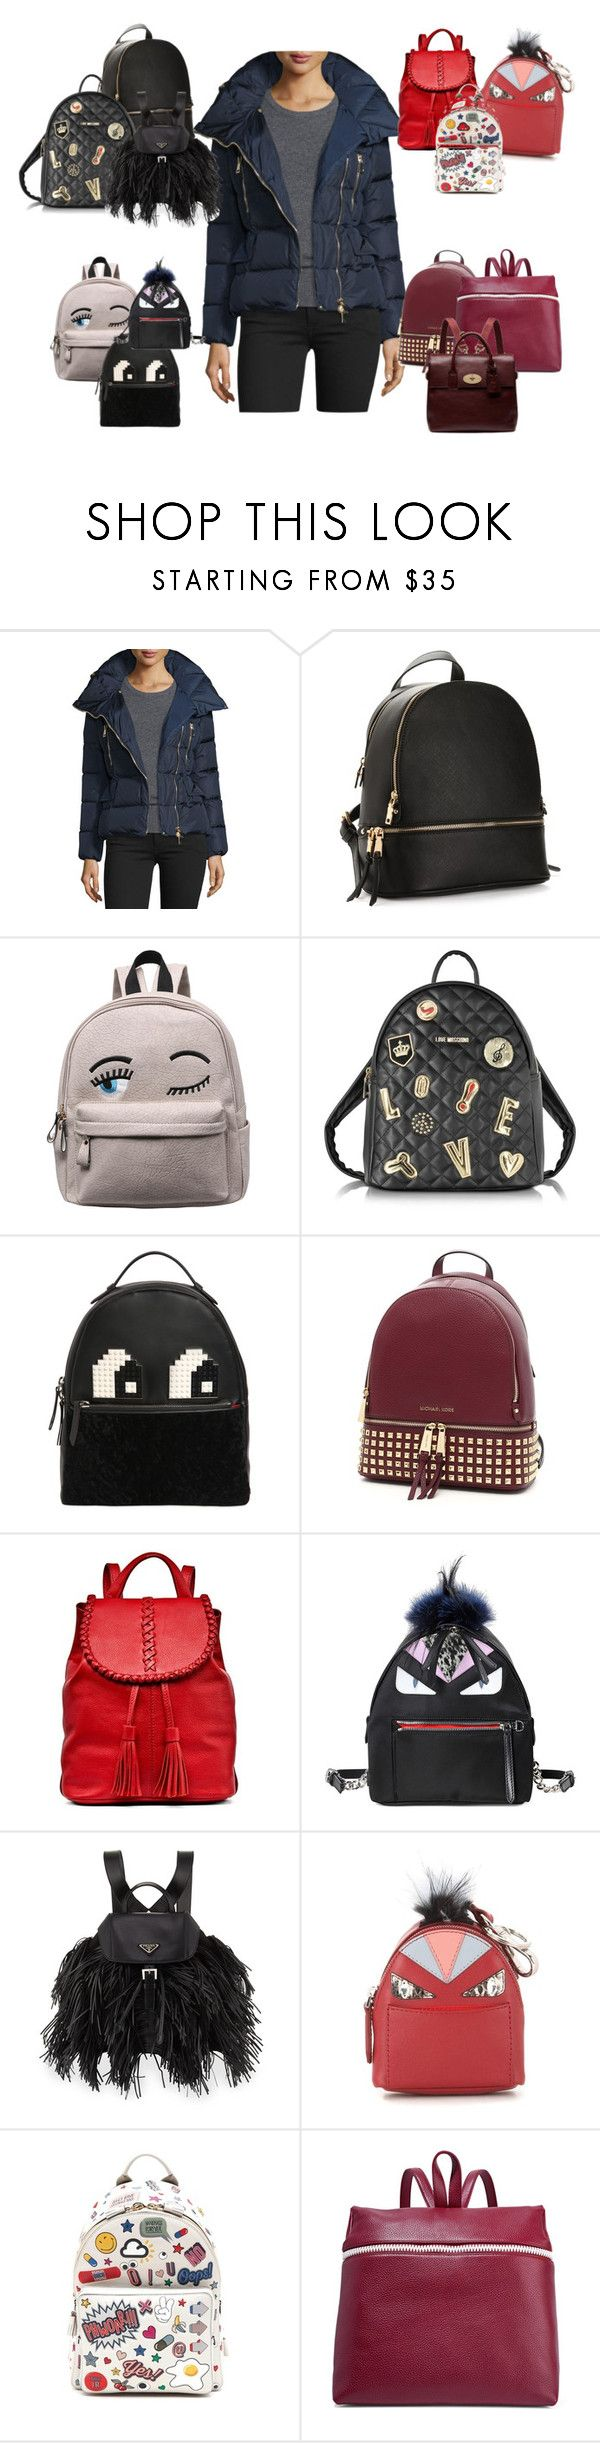 """""""I need a backpack...!"""" by cherithreadgill ❤ liked on Polyvore featuring Moncler, Love Moschino, Les Petits Joueurs, MICHAEL Michael Kors, Jack Rogers, Fendi, Prada, Anya Hindmarch, Kara and Mulberry"""